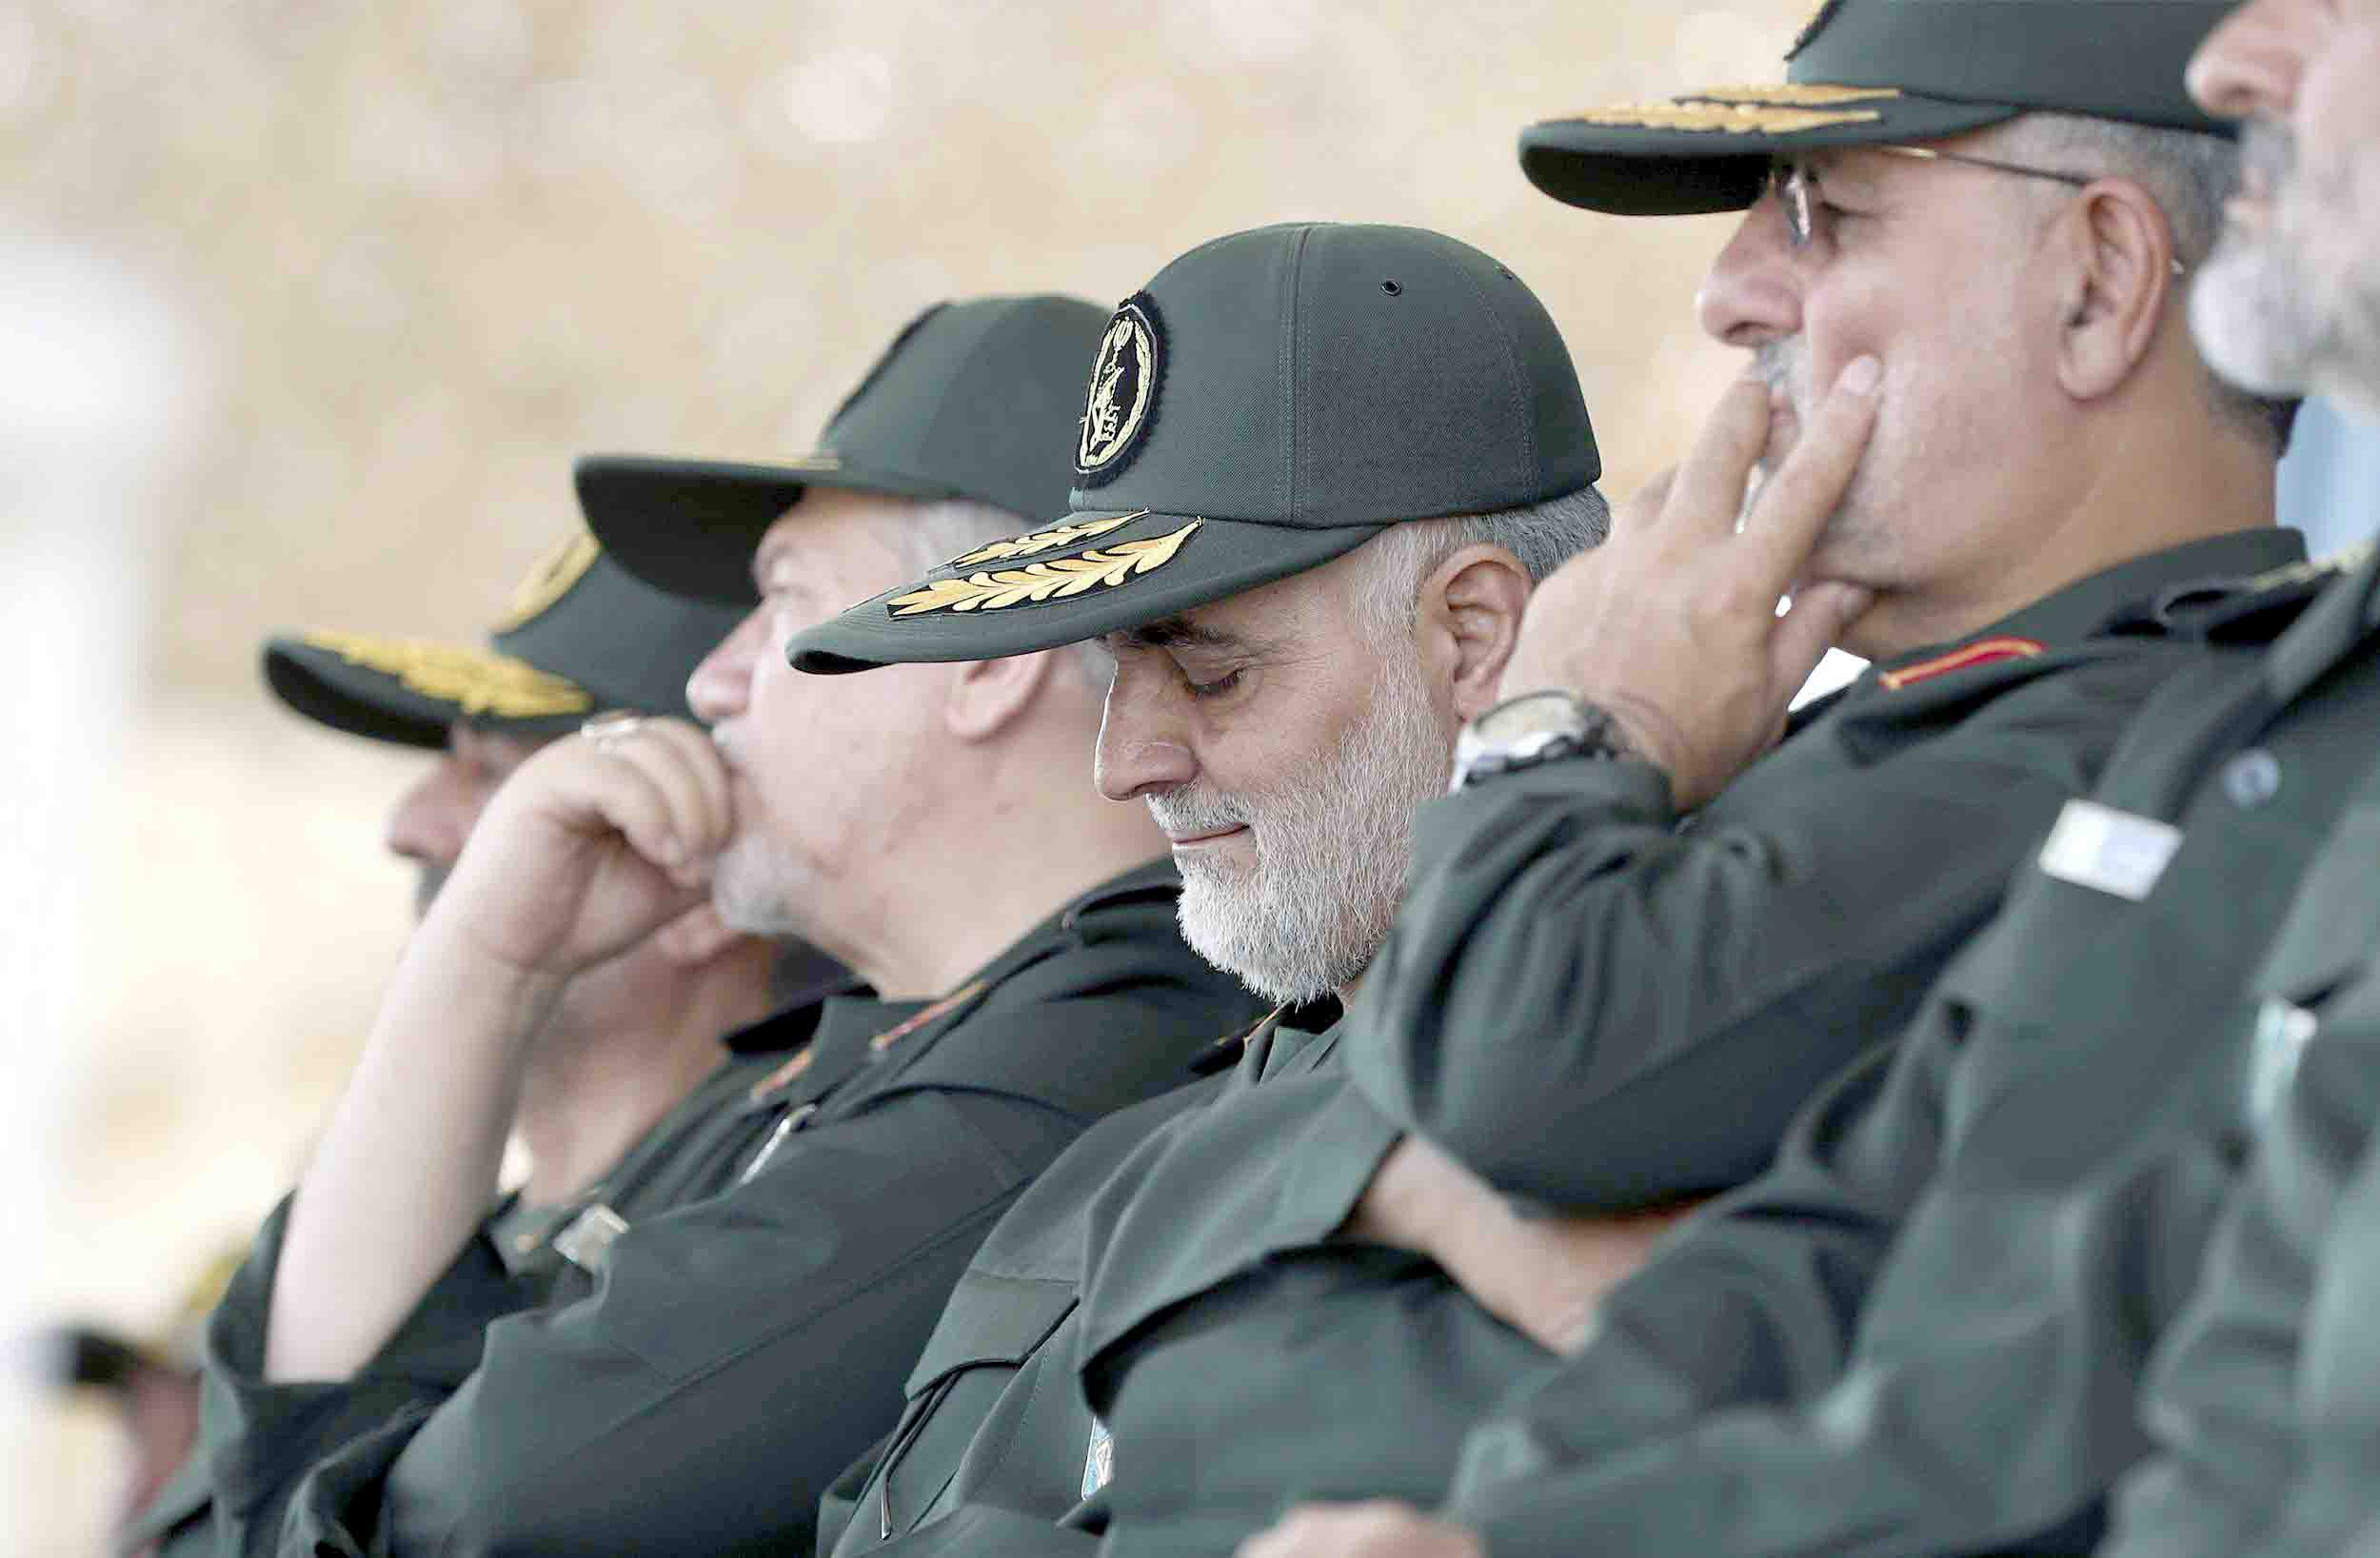 General Qassem Soleimani (C) who heads the elite Quds Force of Iran's Revolutionary Guard attends a graduation ceremony in Tehran, last June. (Office of the Iranian Supreme Leader)